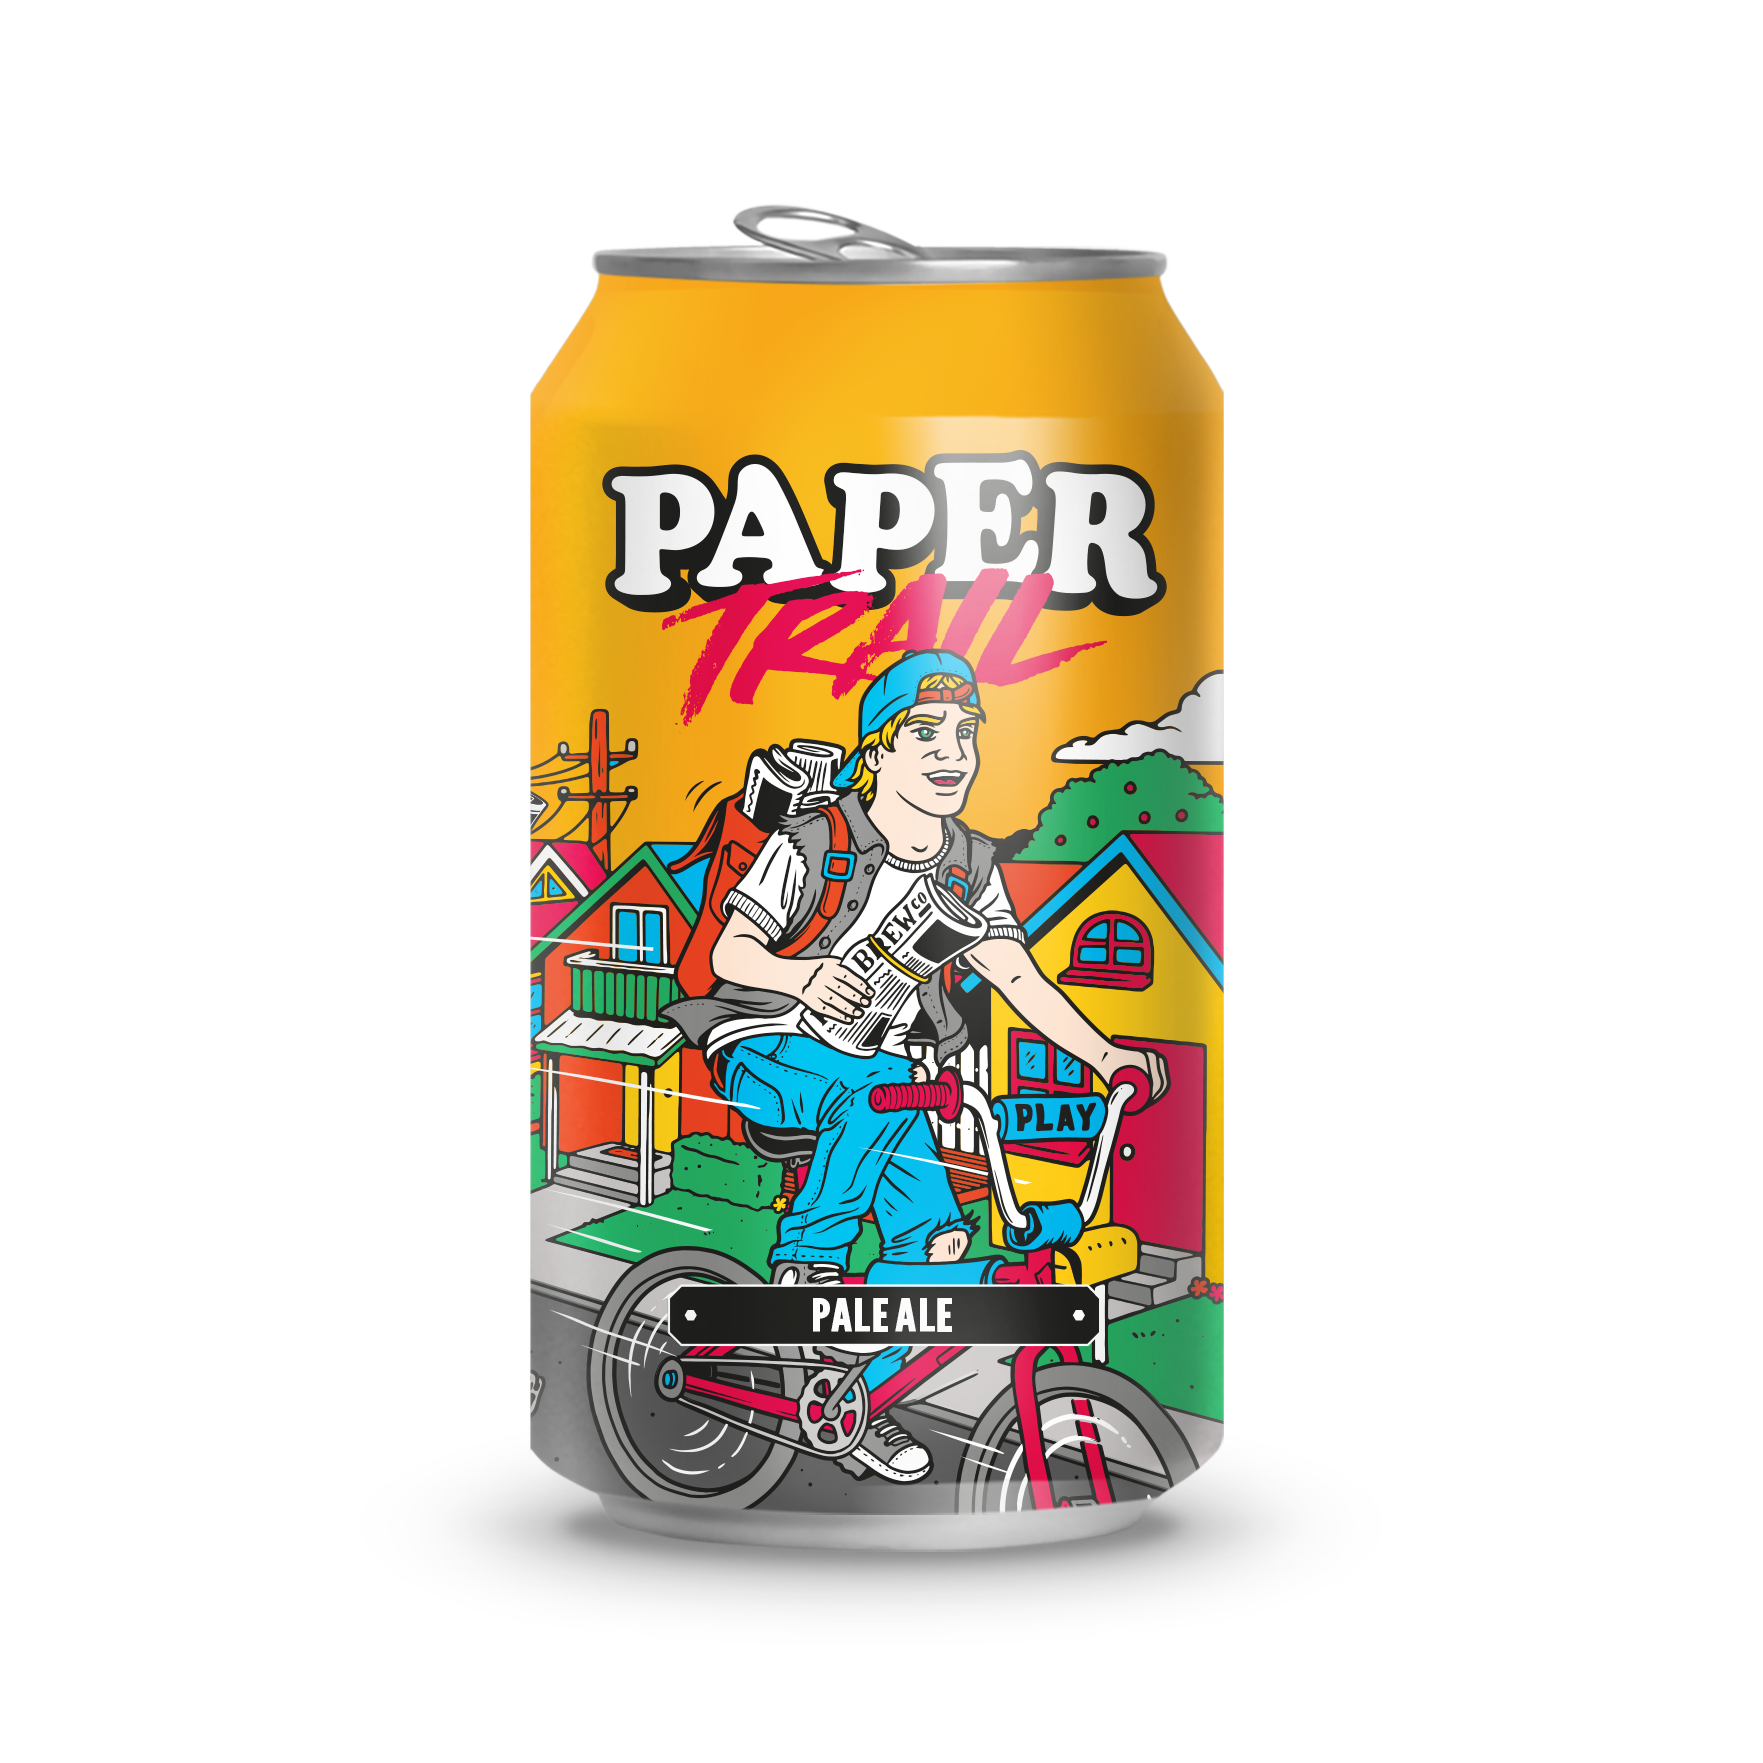 PAPER TRAILPALE ALE - A fresh, delicious and drinkable aromatic pale ale jumping with a huge pop of big, punchy tropical flavours delivered straight from the USA.Paper Trail is a love-letter to everyone's favourite game growing up, Paperboy.The best part is we deliver to your door with the help of our friends, 10 Devonshire Place.Ingredients:Water, Barley, Hops, Yeast.Allergen warnings are in bold.Hops:Mosaic and Citra 4.4% ABV / 1.4 UK UNITS